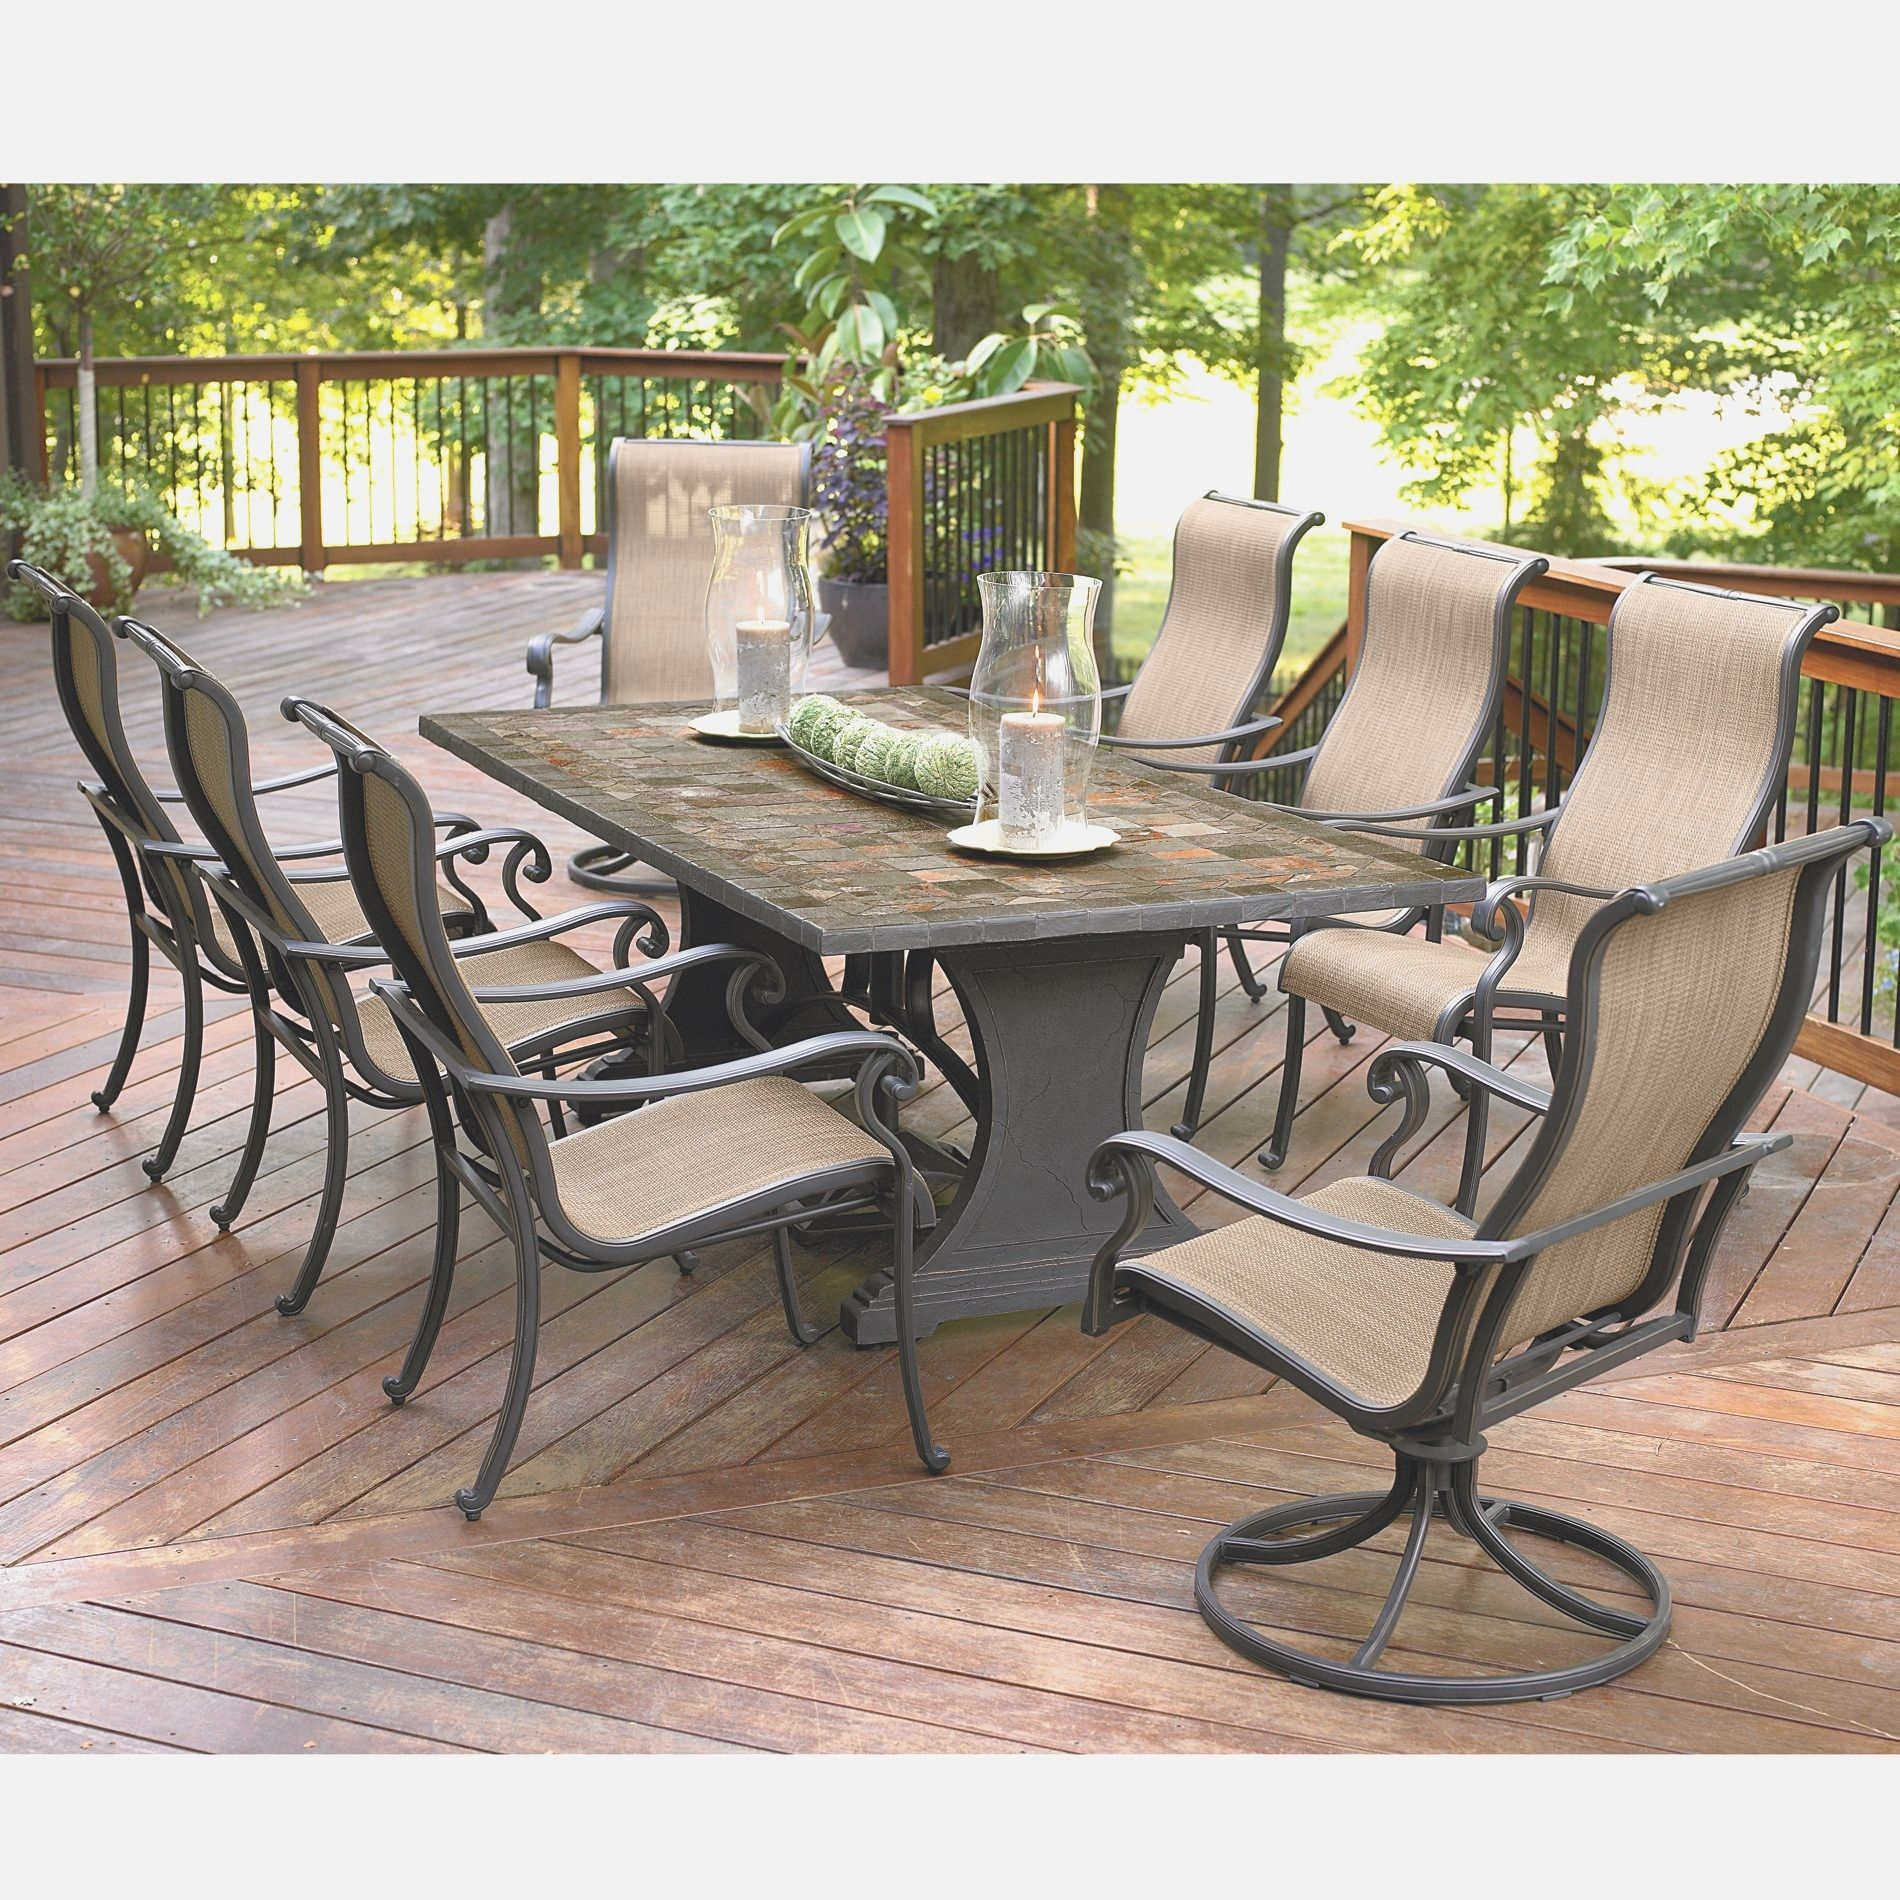 Patio Furniture Sets Sale Agio Patio Furniture Patio Furniture Sets Cheap Patio Furniture